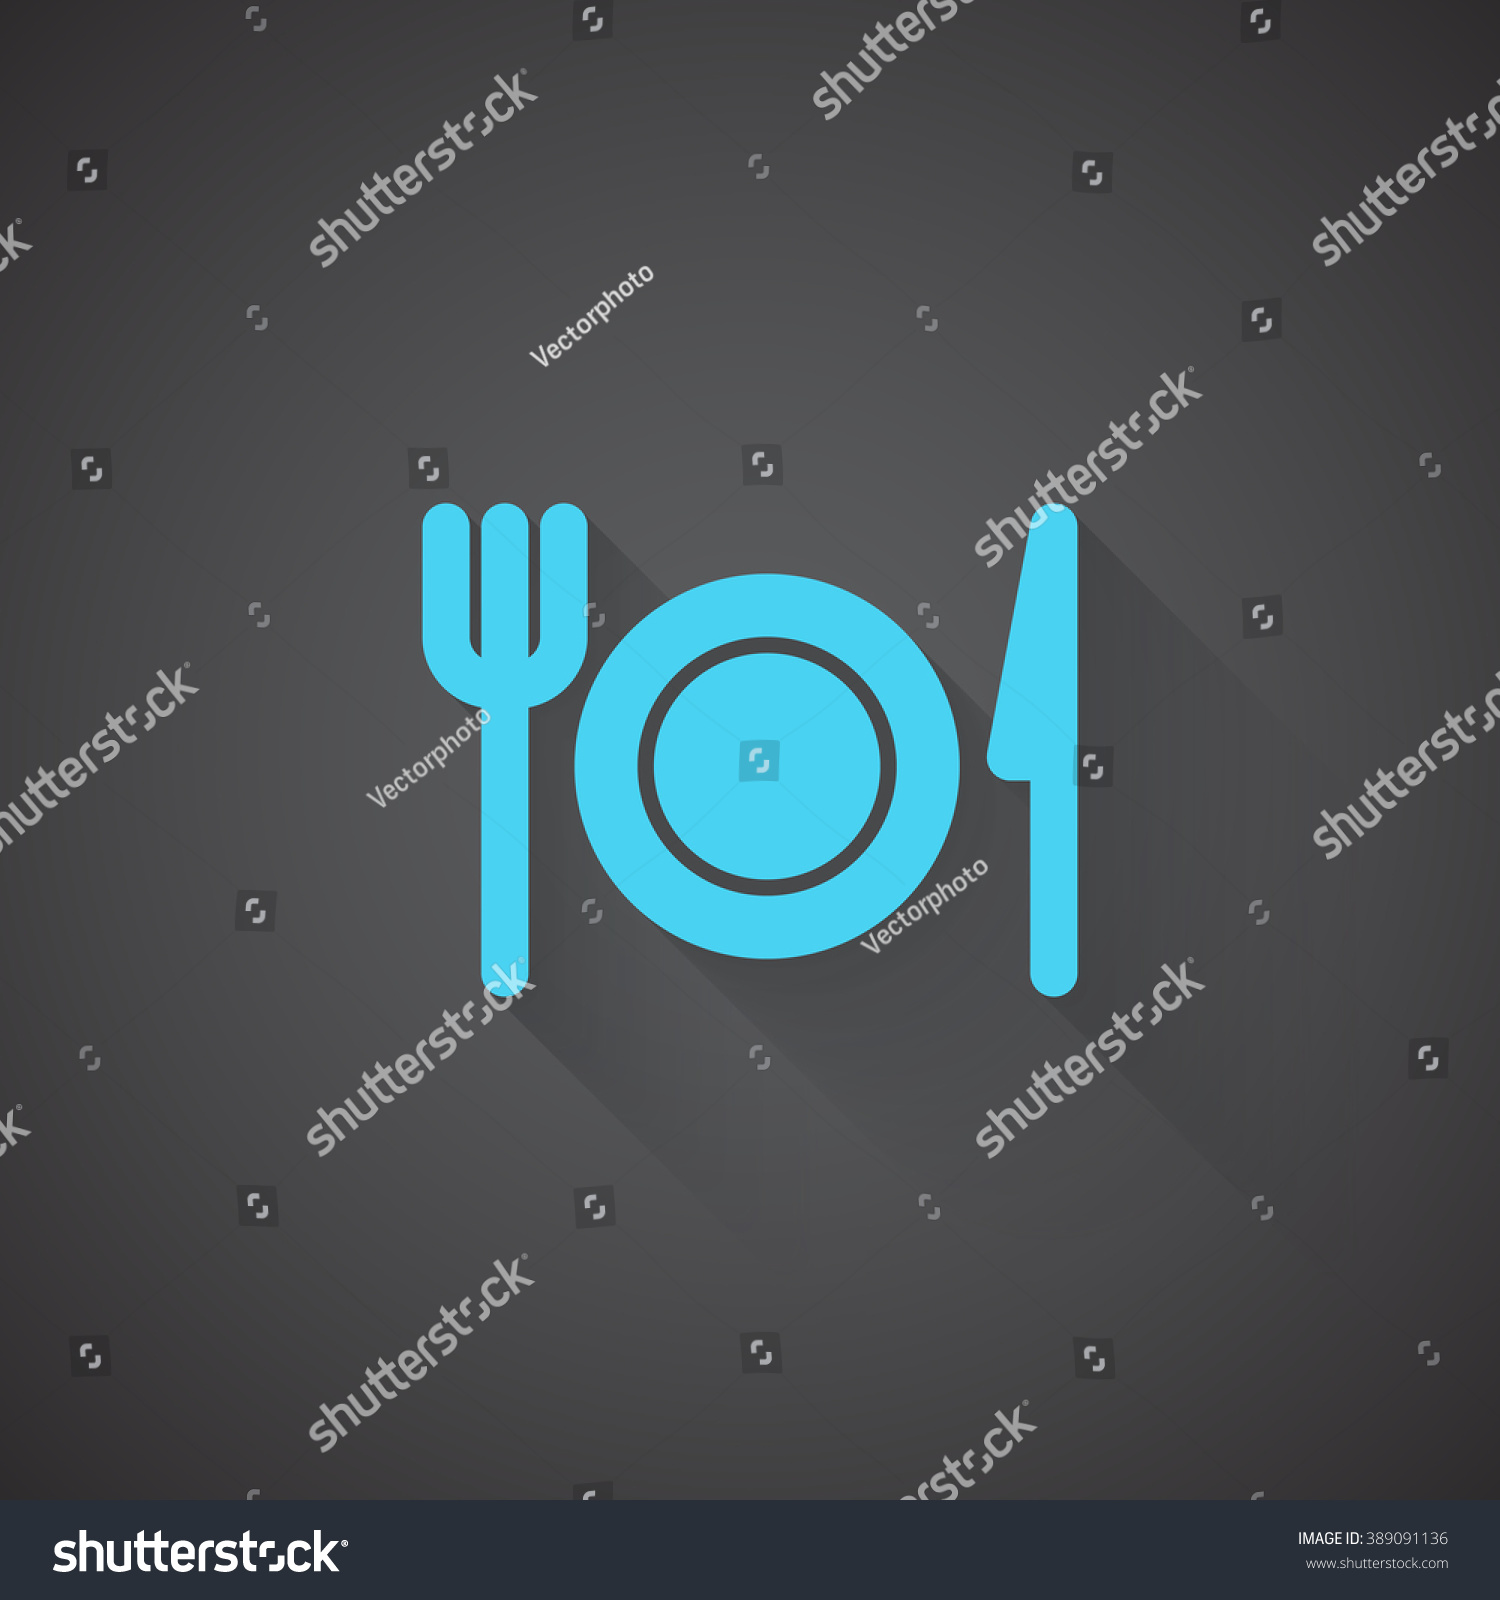 Flat Dinner Web App Icon On Stock Illustration - Royalty Free Stock